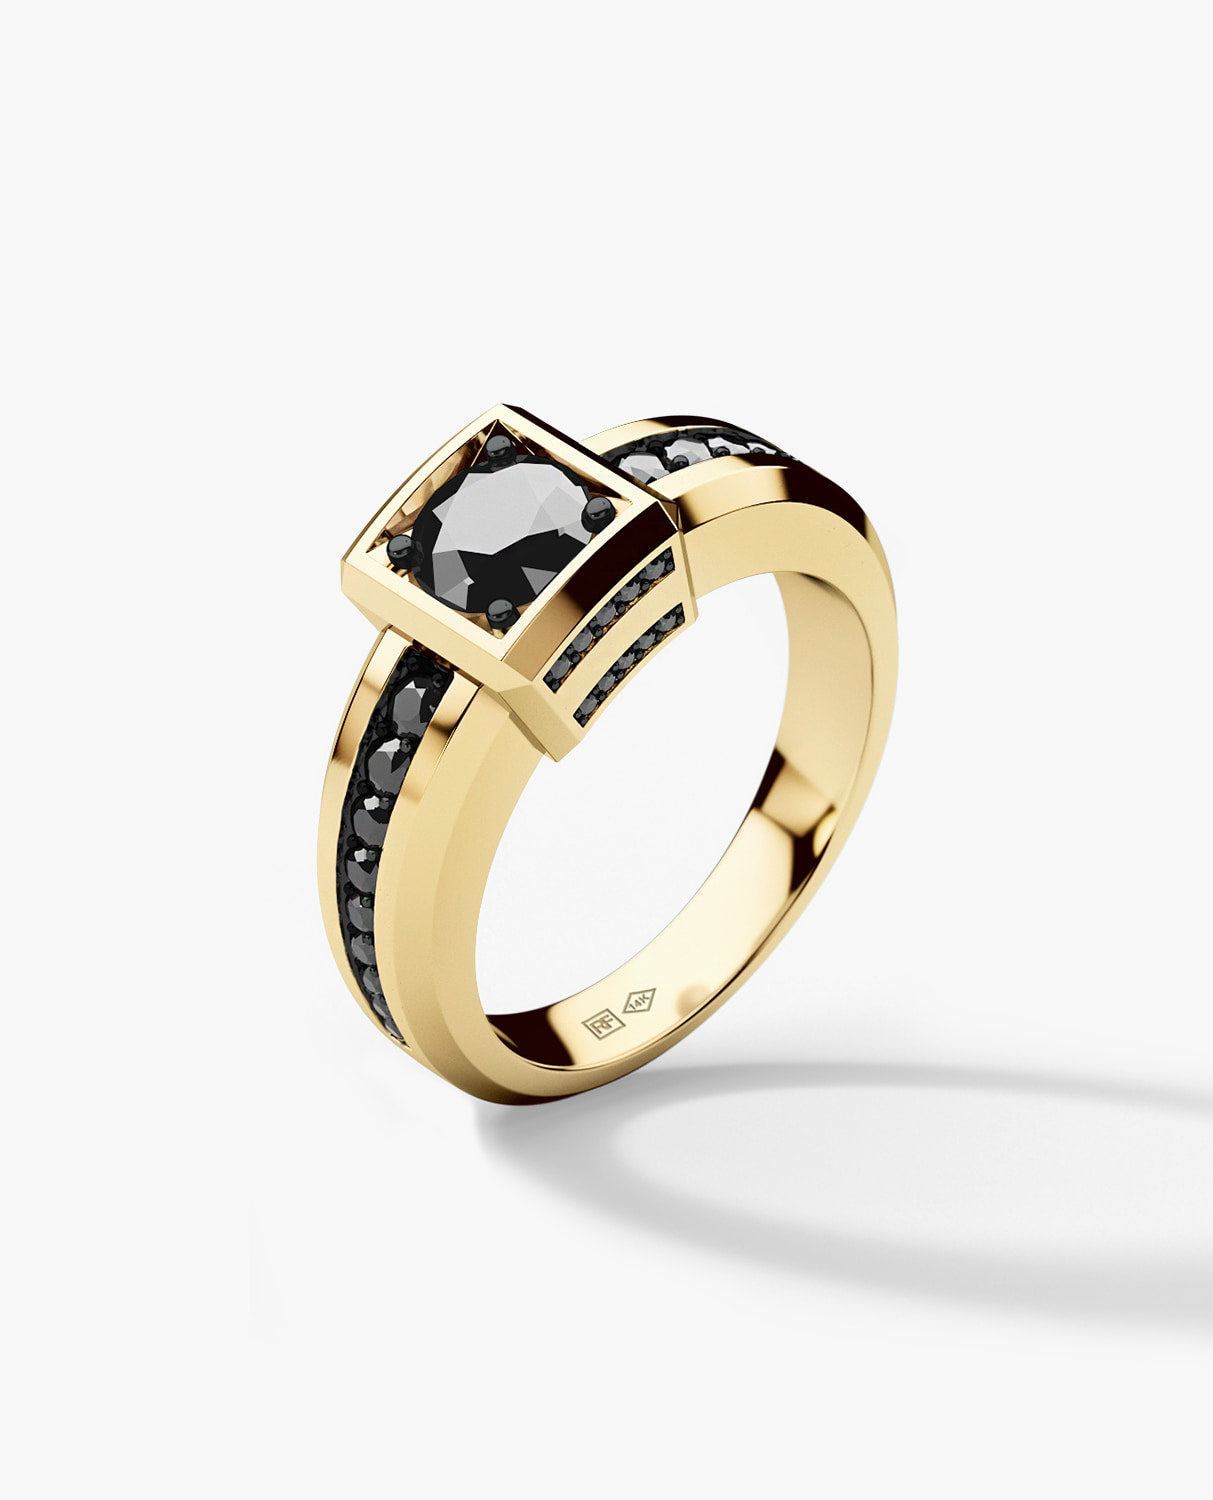 VULTURE Mens Gold Wedding Ring with 1.45 ct Black Diamonds